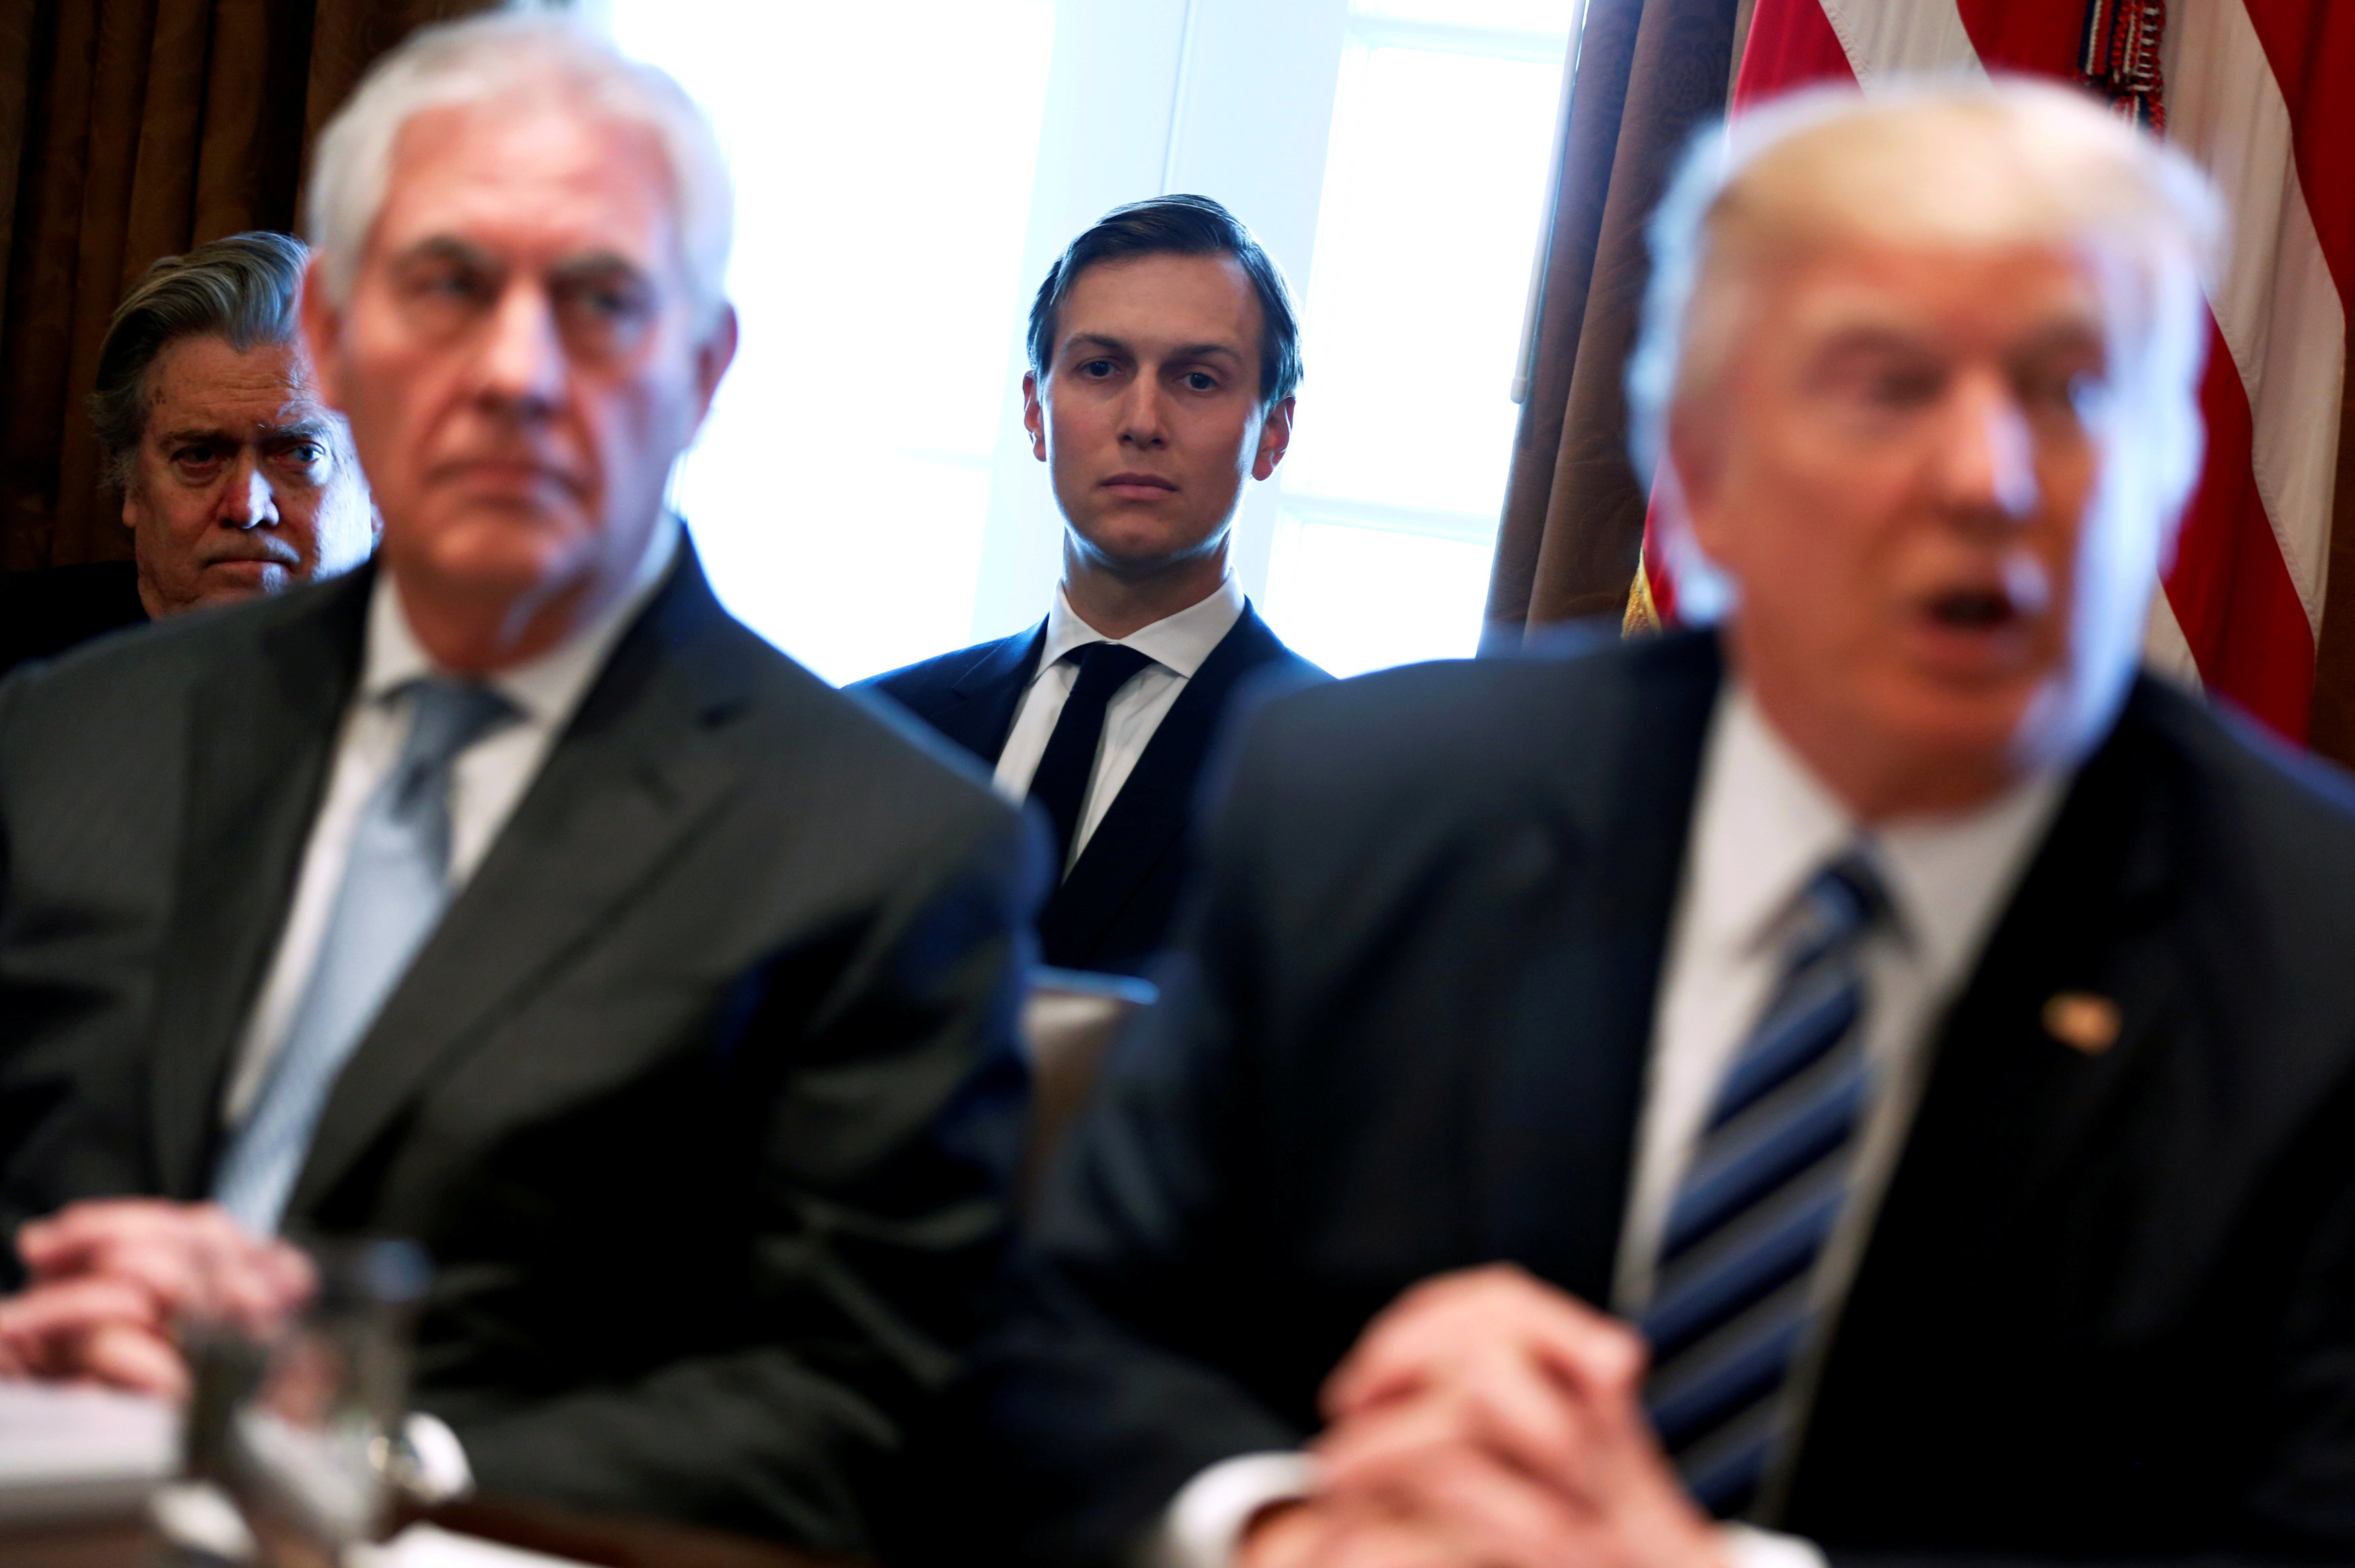 White House advisors Jared Kushner and Steve Bannon look on as U.S. President Donald Trump (R), flanked by Secretary of State Rex Tillerson (2nd L), holds a cabinet meeting at the White House in Washington, U.S.